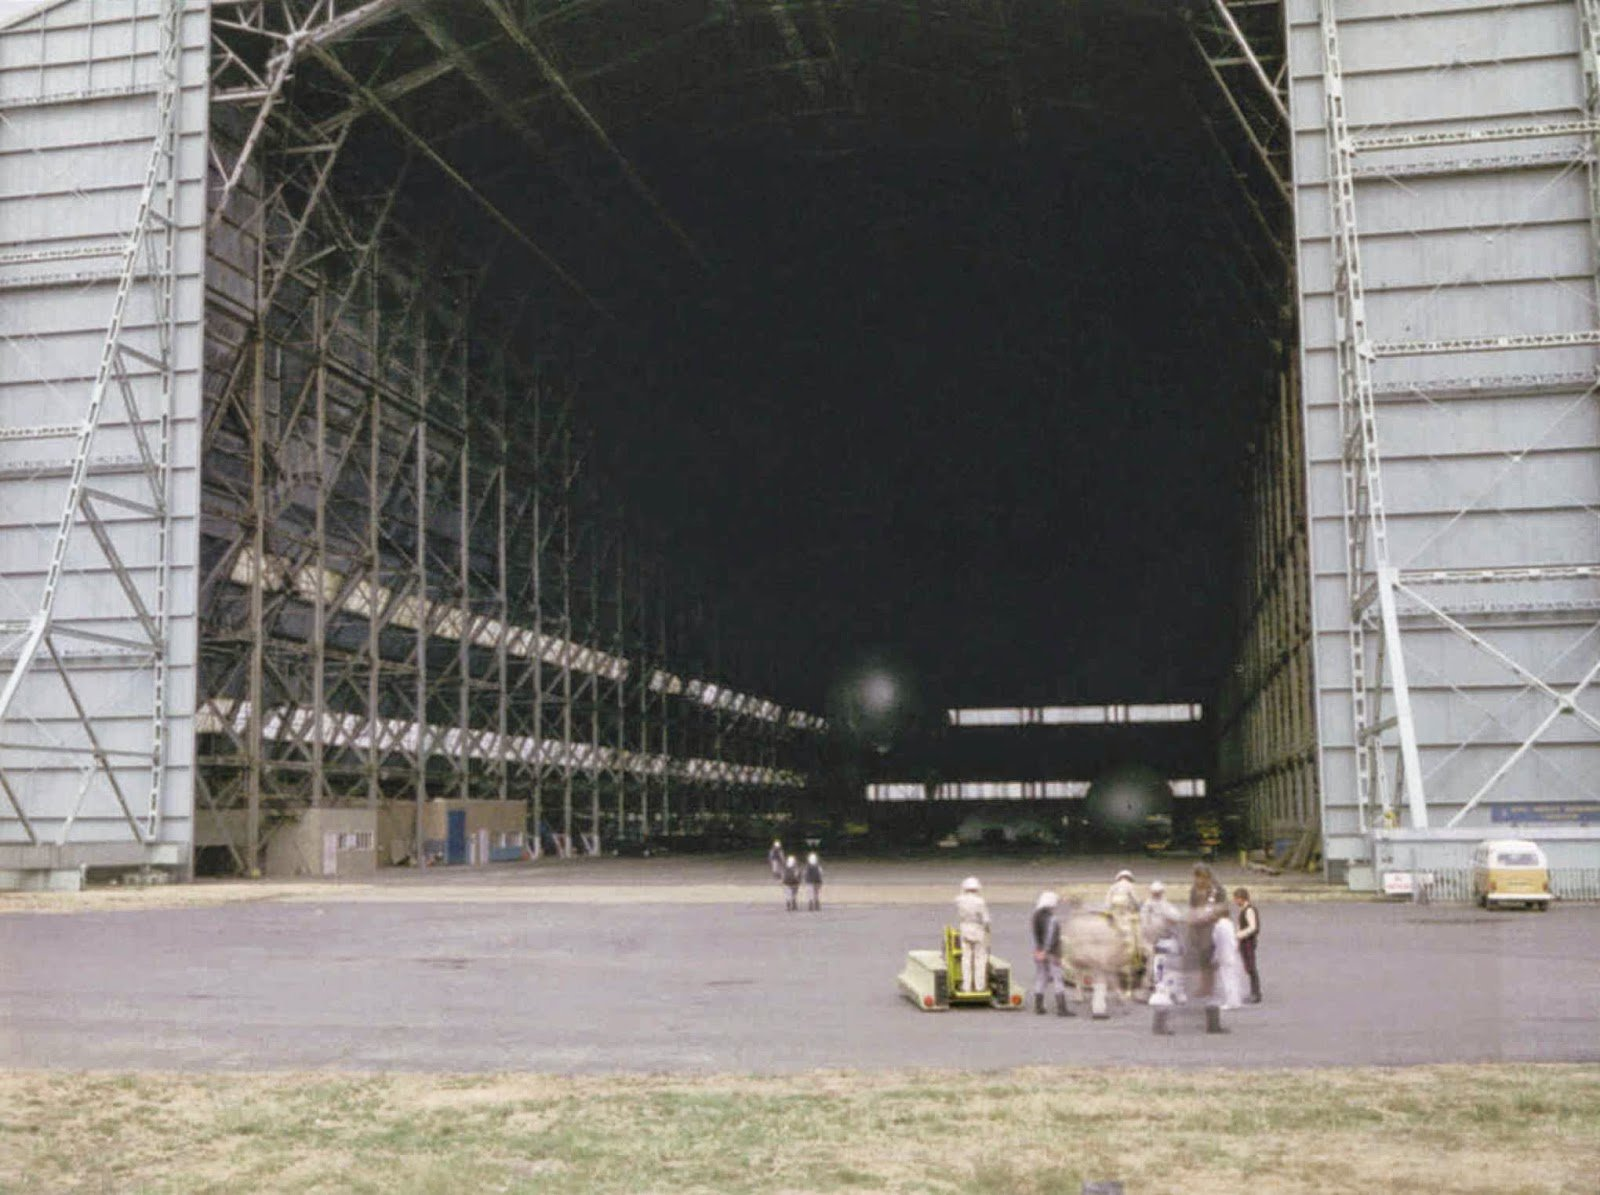 star wars yavin base uk cardington-0000